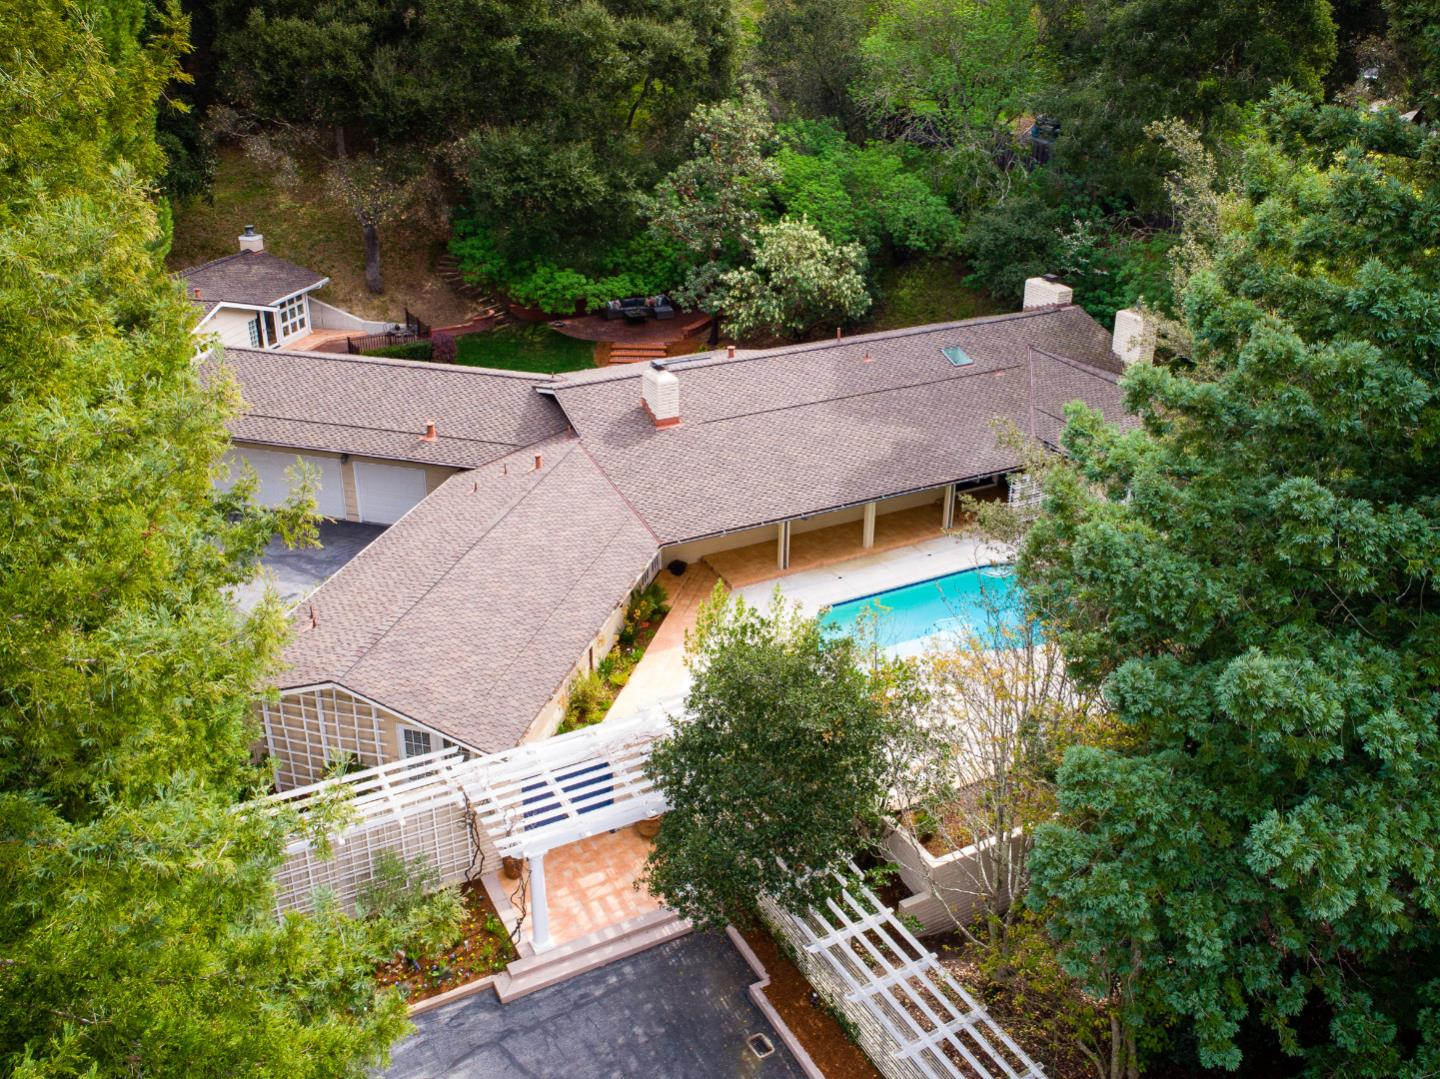 286 WILLOWBROOK DR, PORTOLA VALLEY, CA 94028